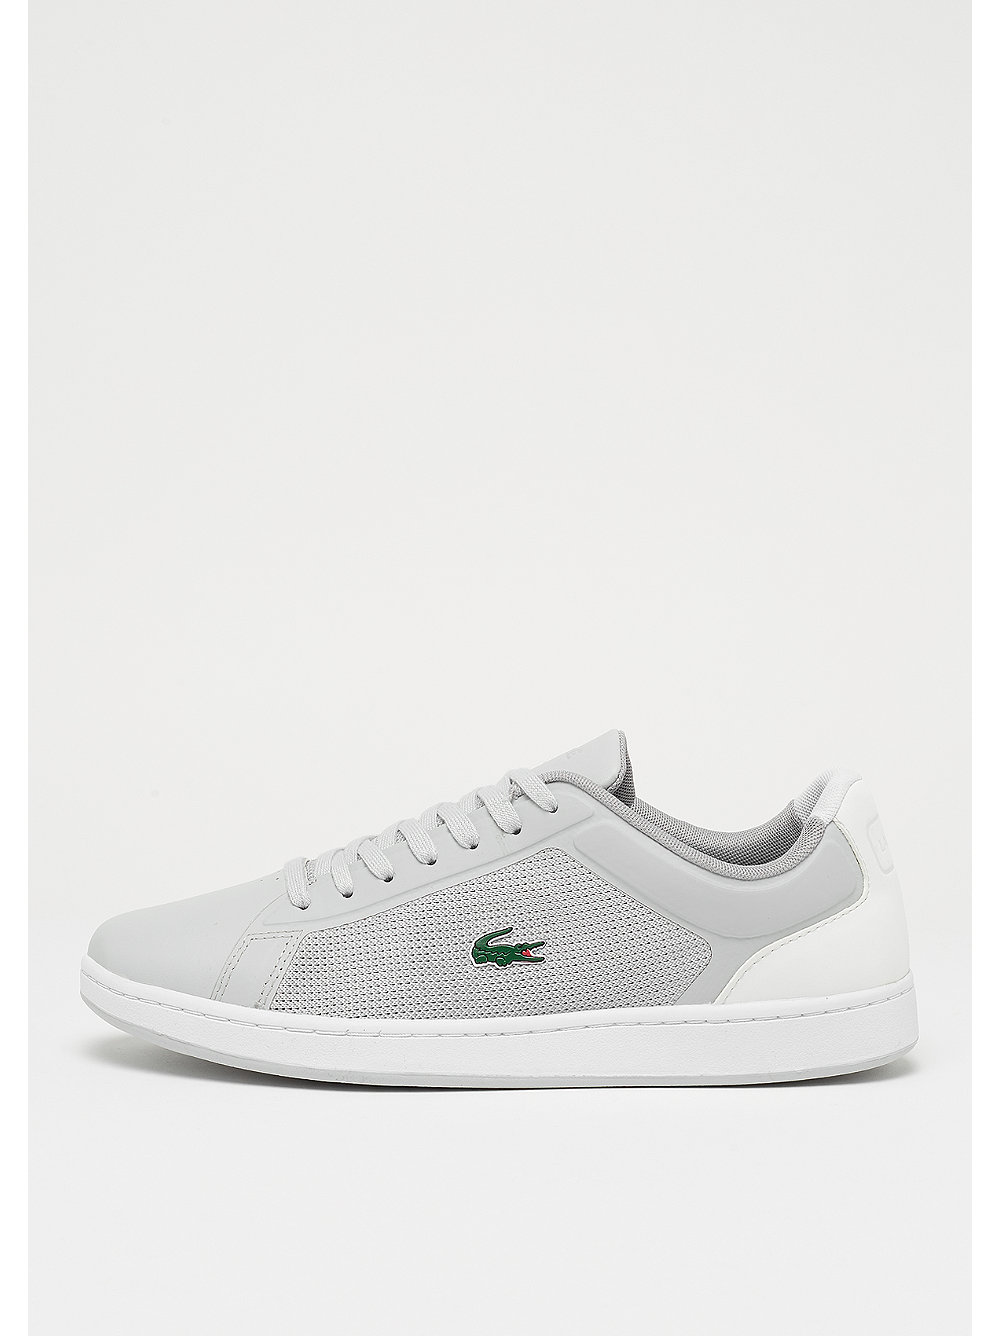 Lacoste Endliner 217 1 SPM light grey